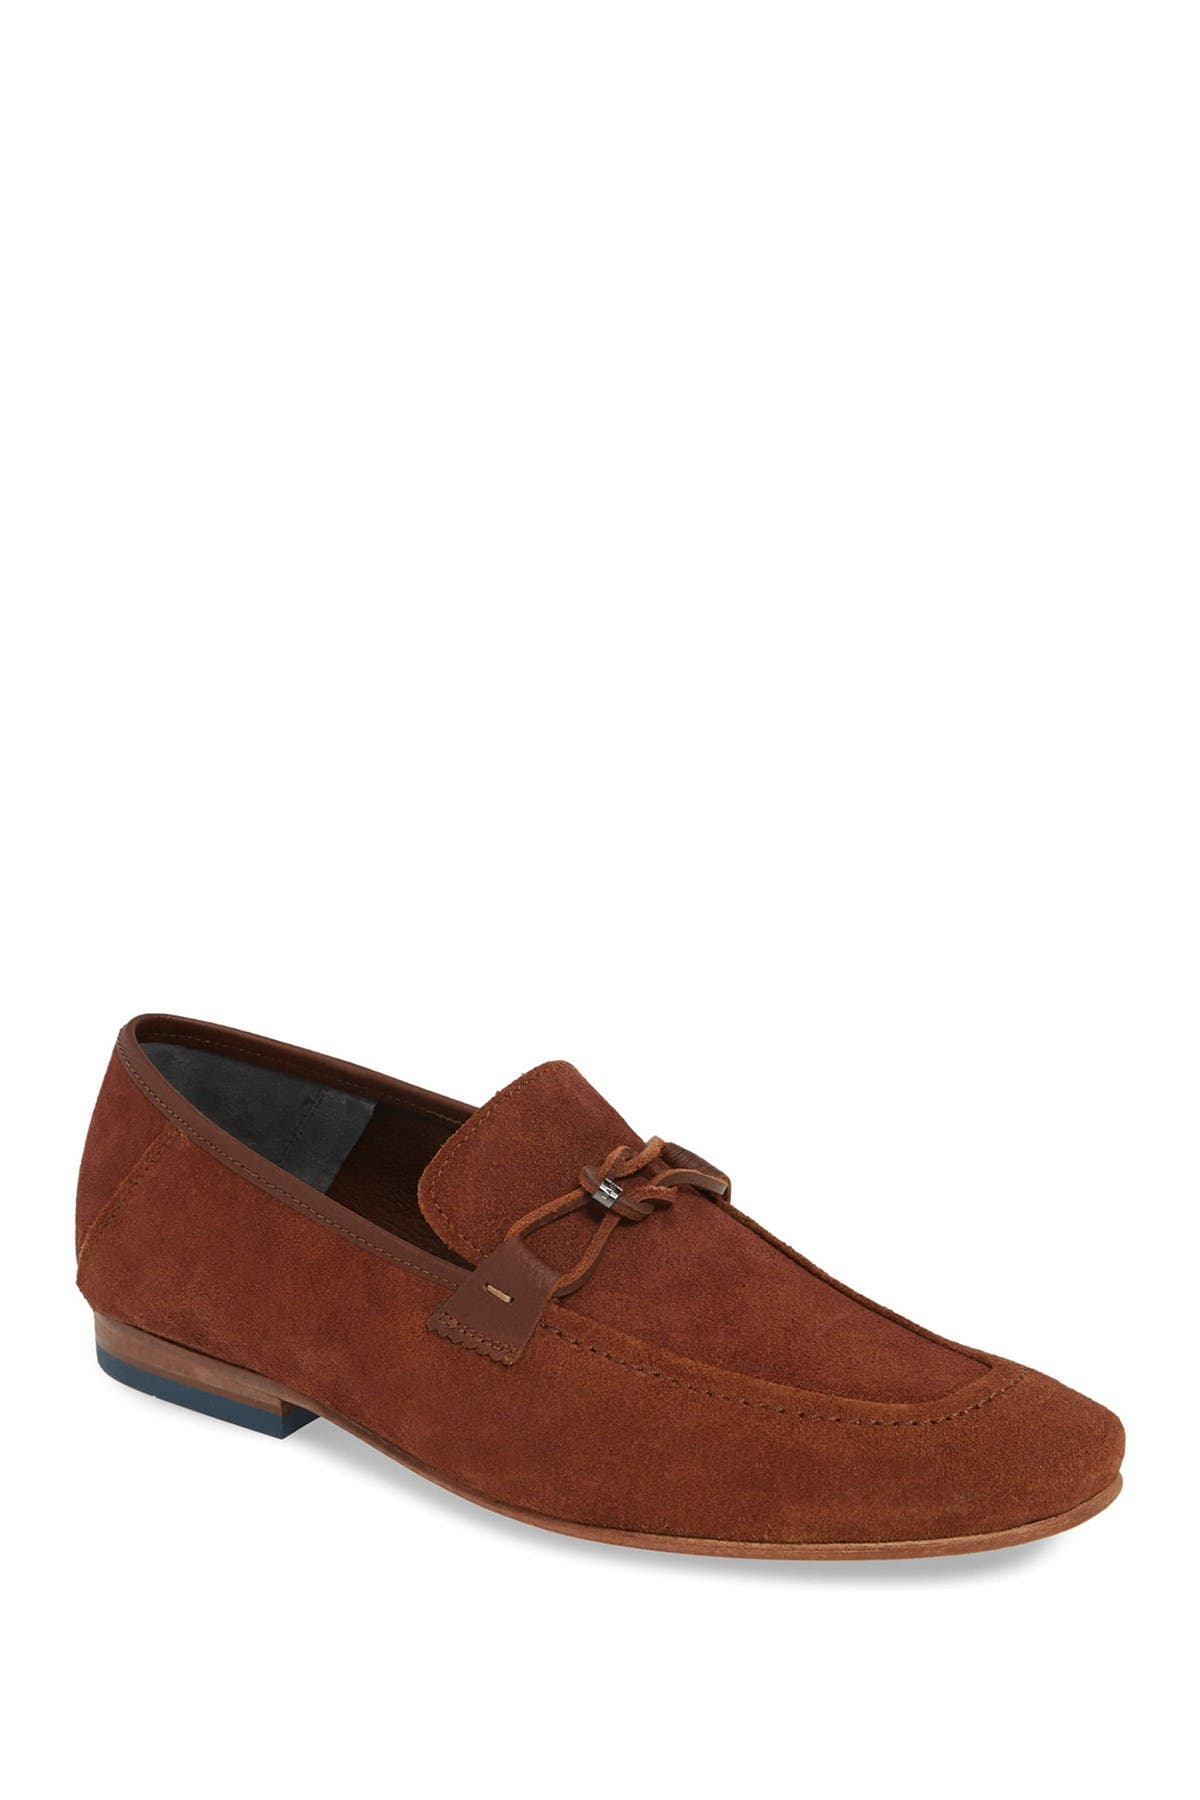 Ted Baker London | Siblac Suede Loafer